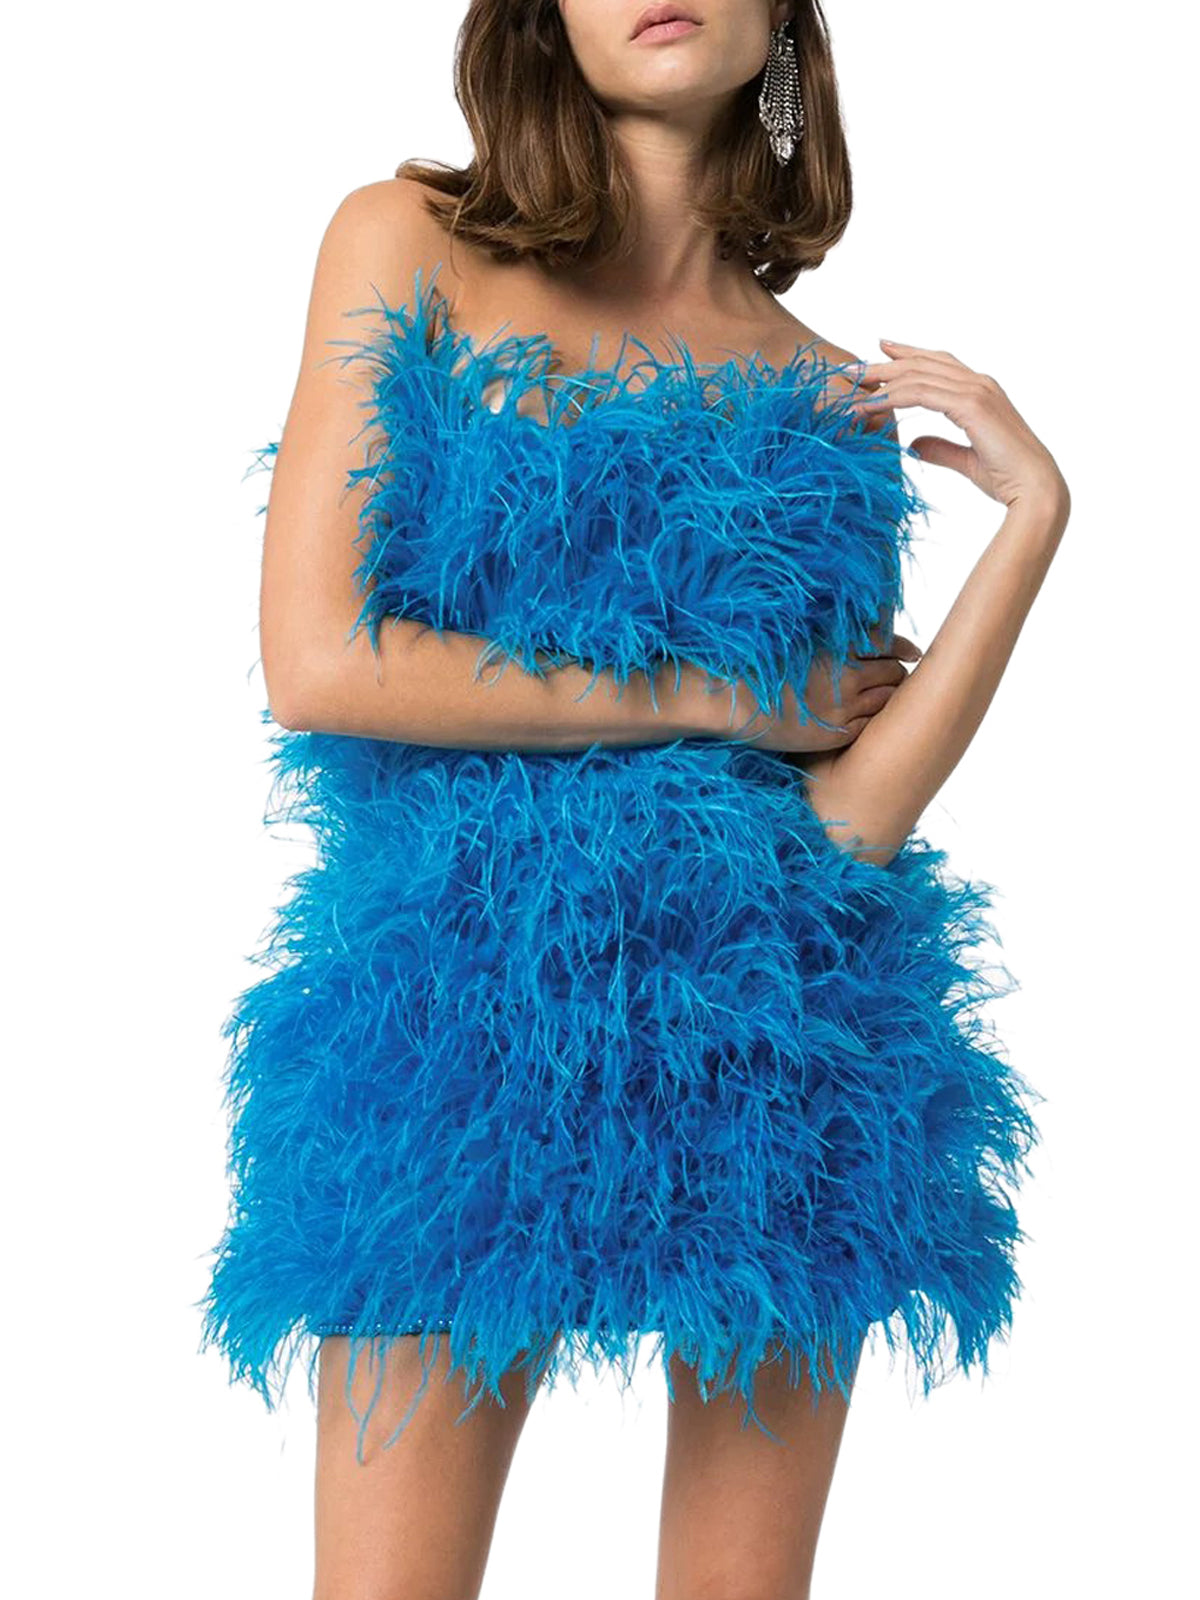 `ROSIE` TURQUOISE MINI DRESS IN OSTRICH FEATHERS